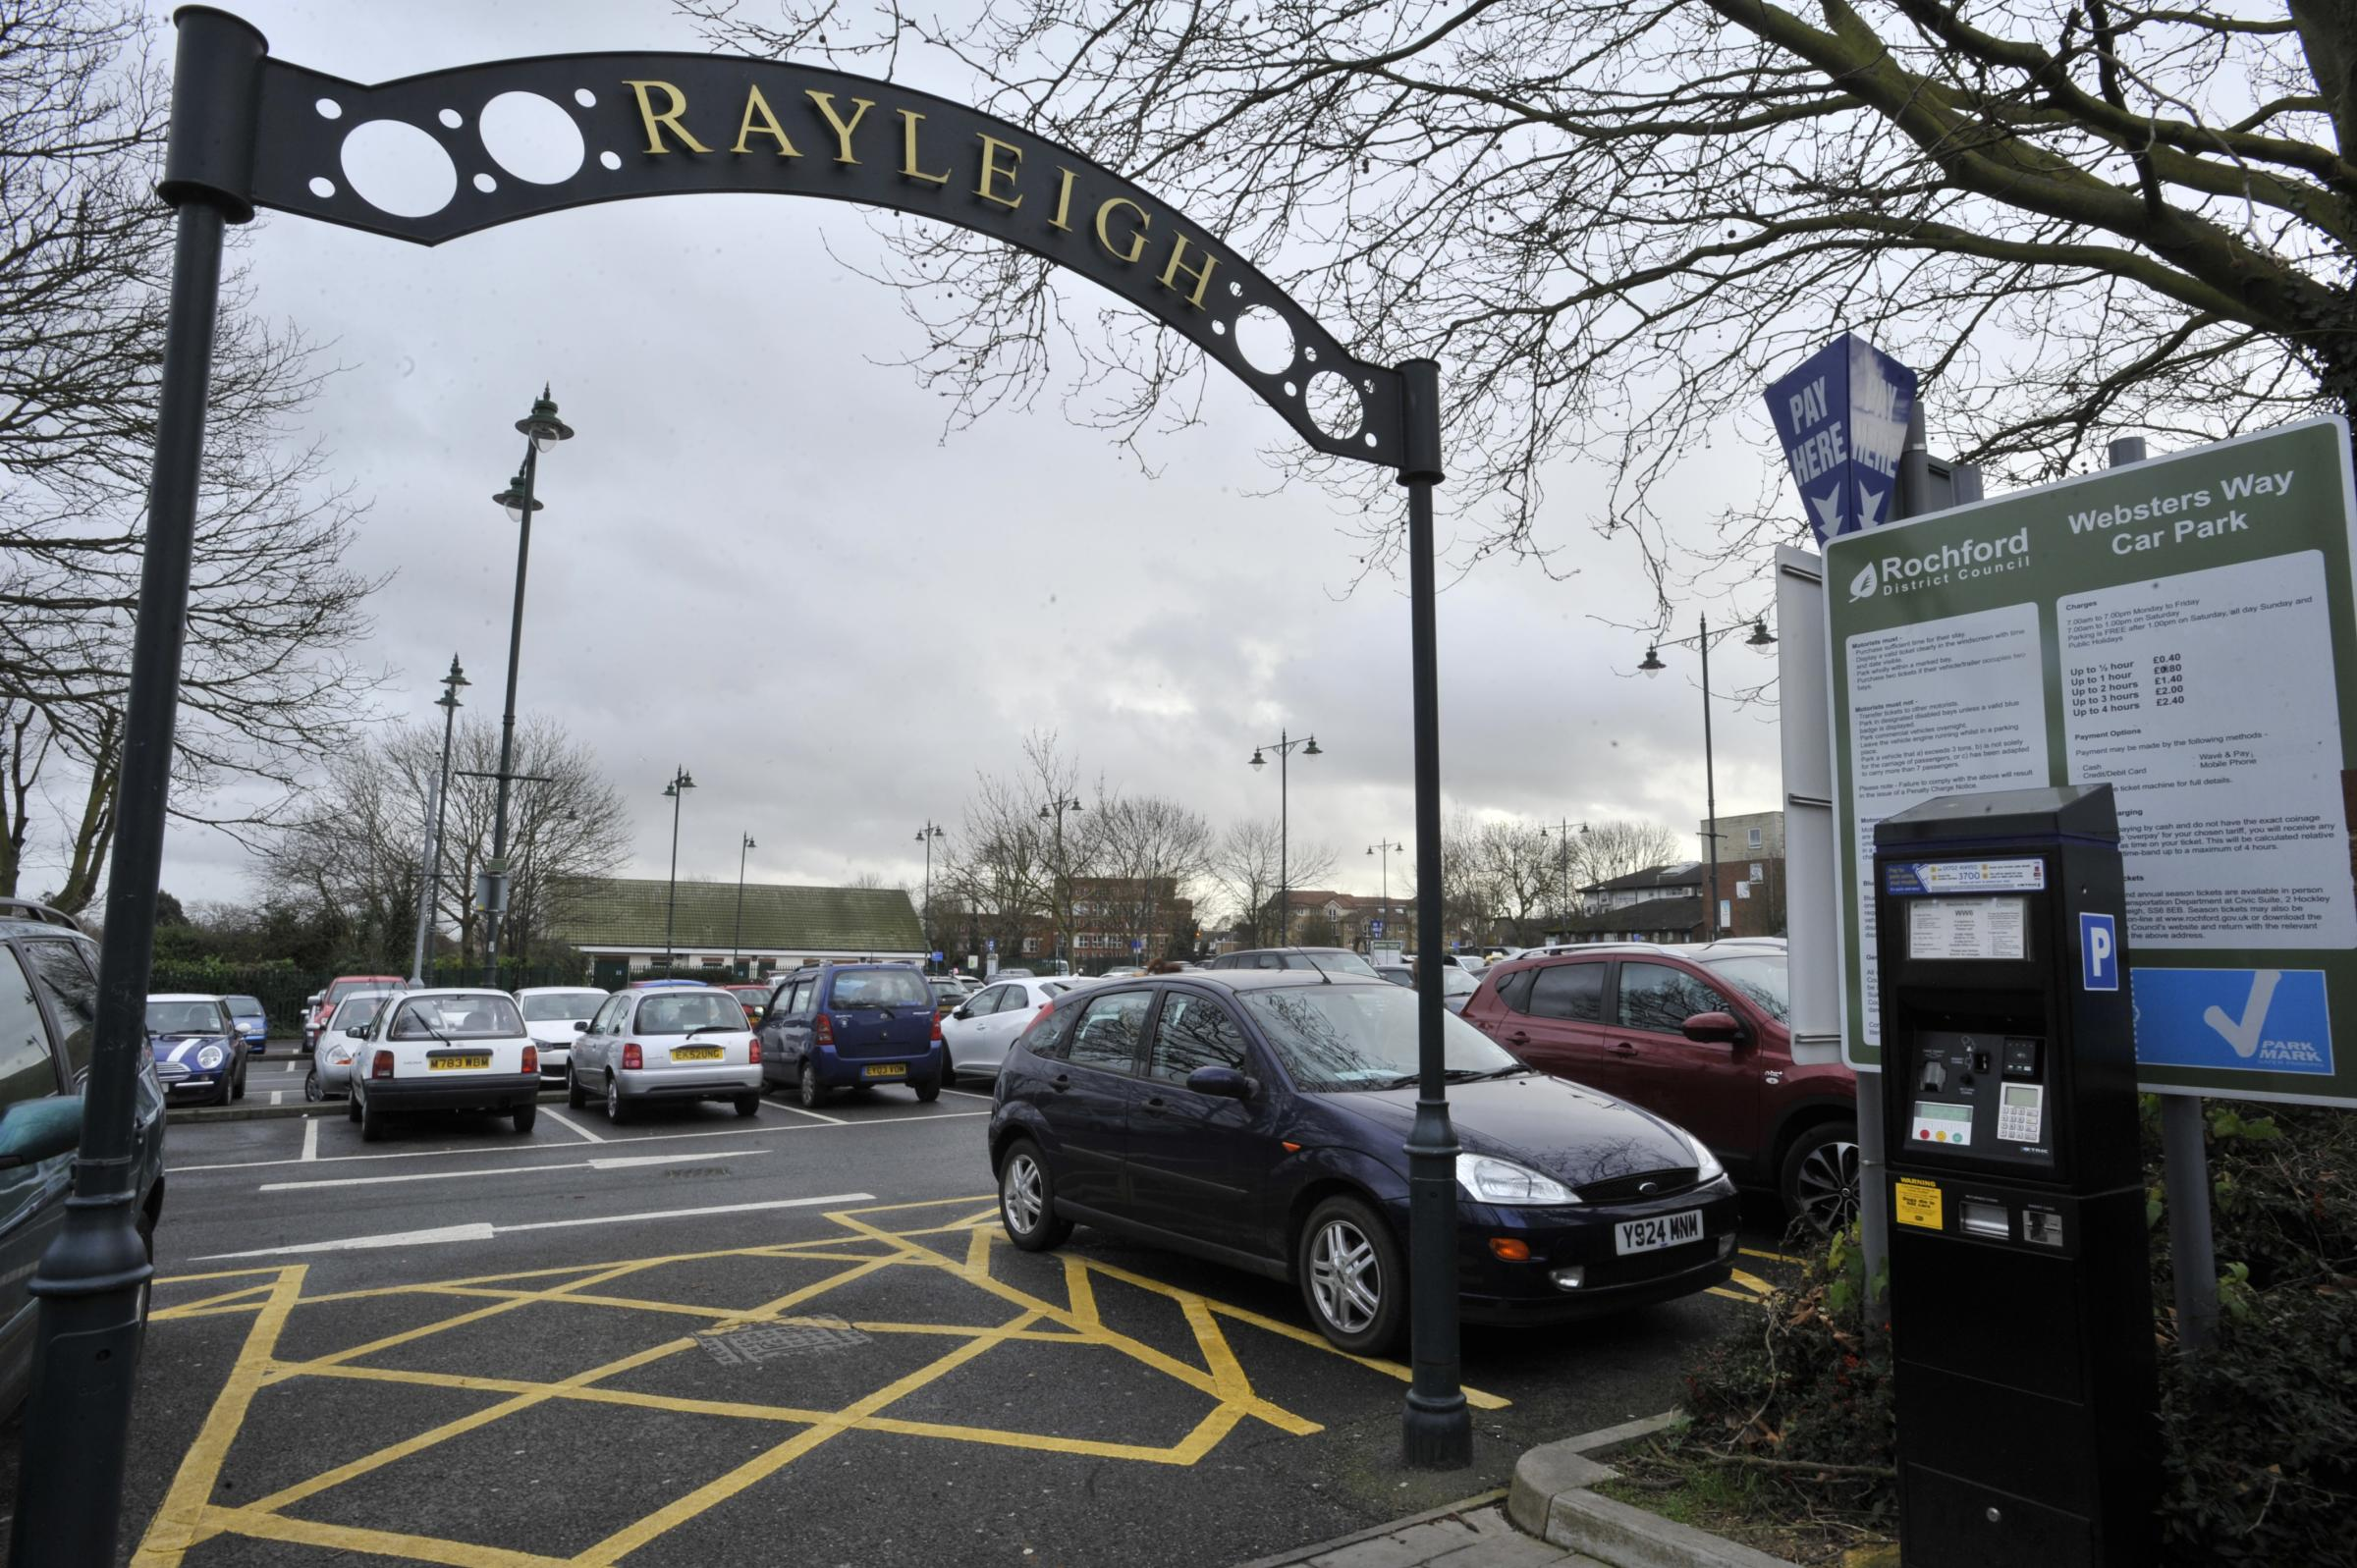 Why did 11 councillors abstain on key parking fee vote?